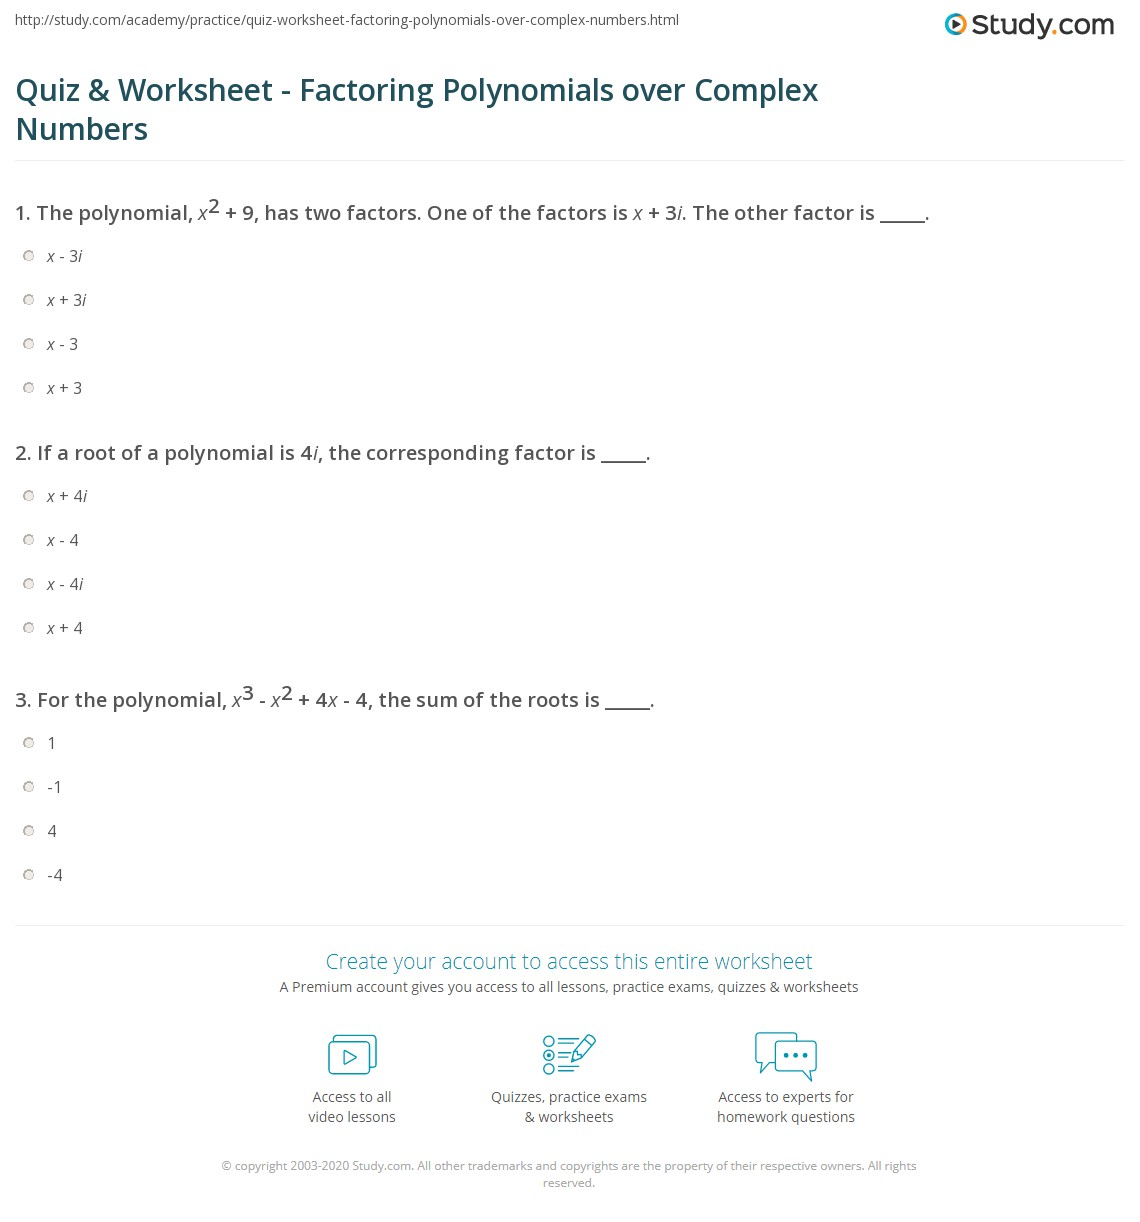 worksheet Factoring Polynomials Worksheets quiz worksheet factoring polynomials over complex numbers print factorization of worksheet